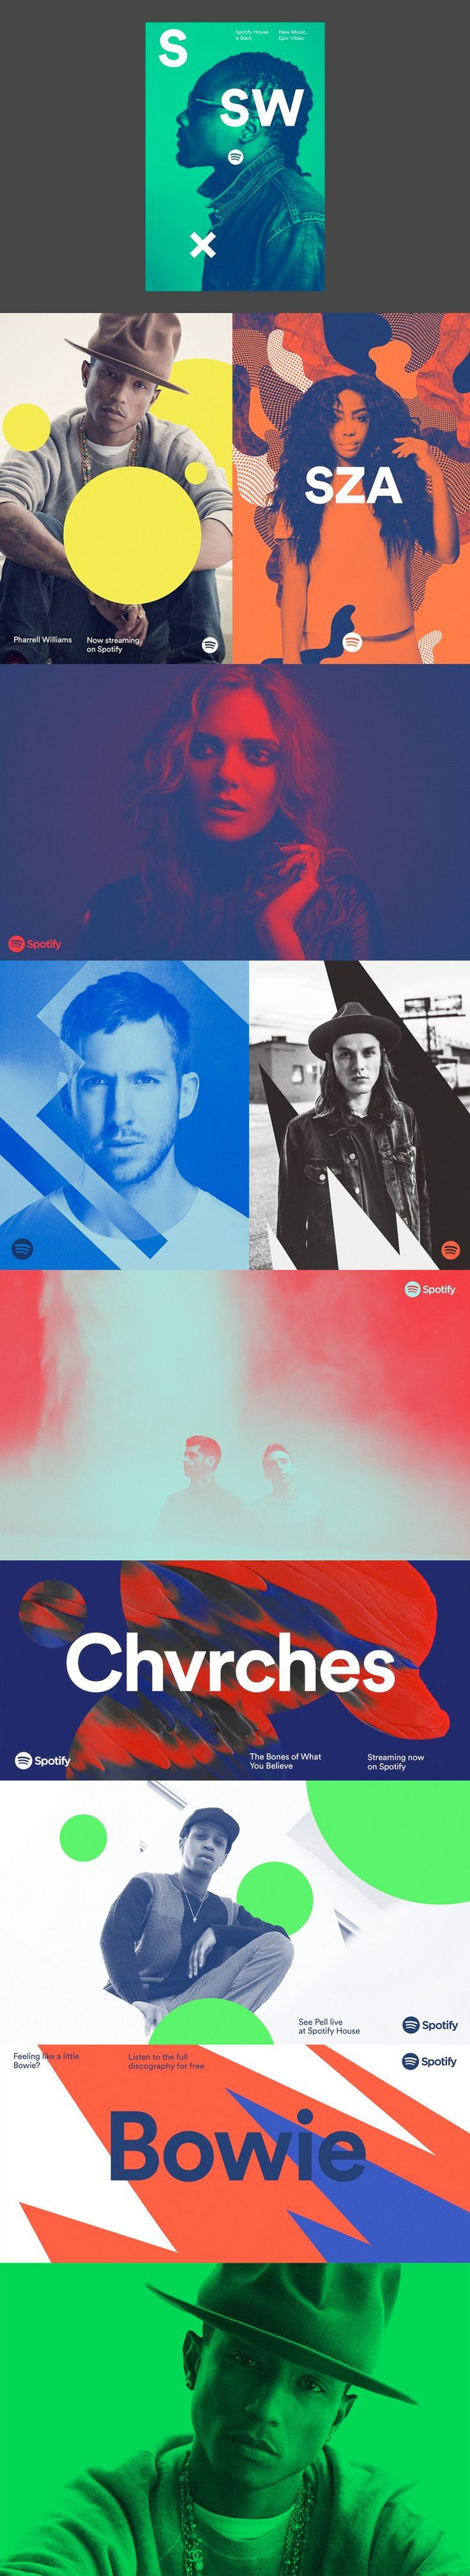 New Spotify branding, bold colours, geometric shapes, visual interest.